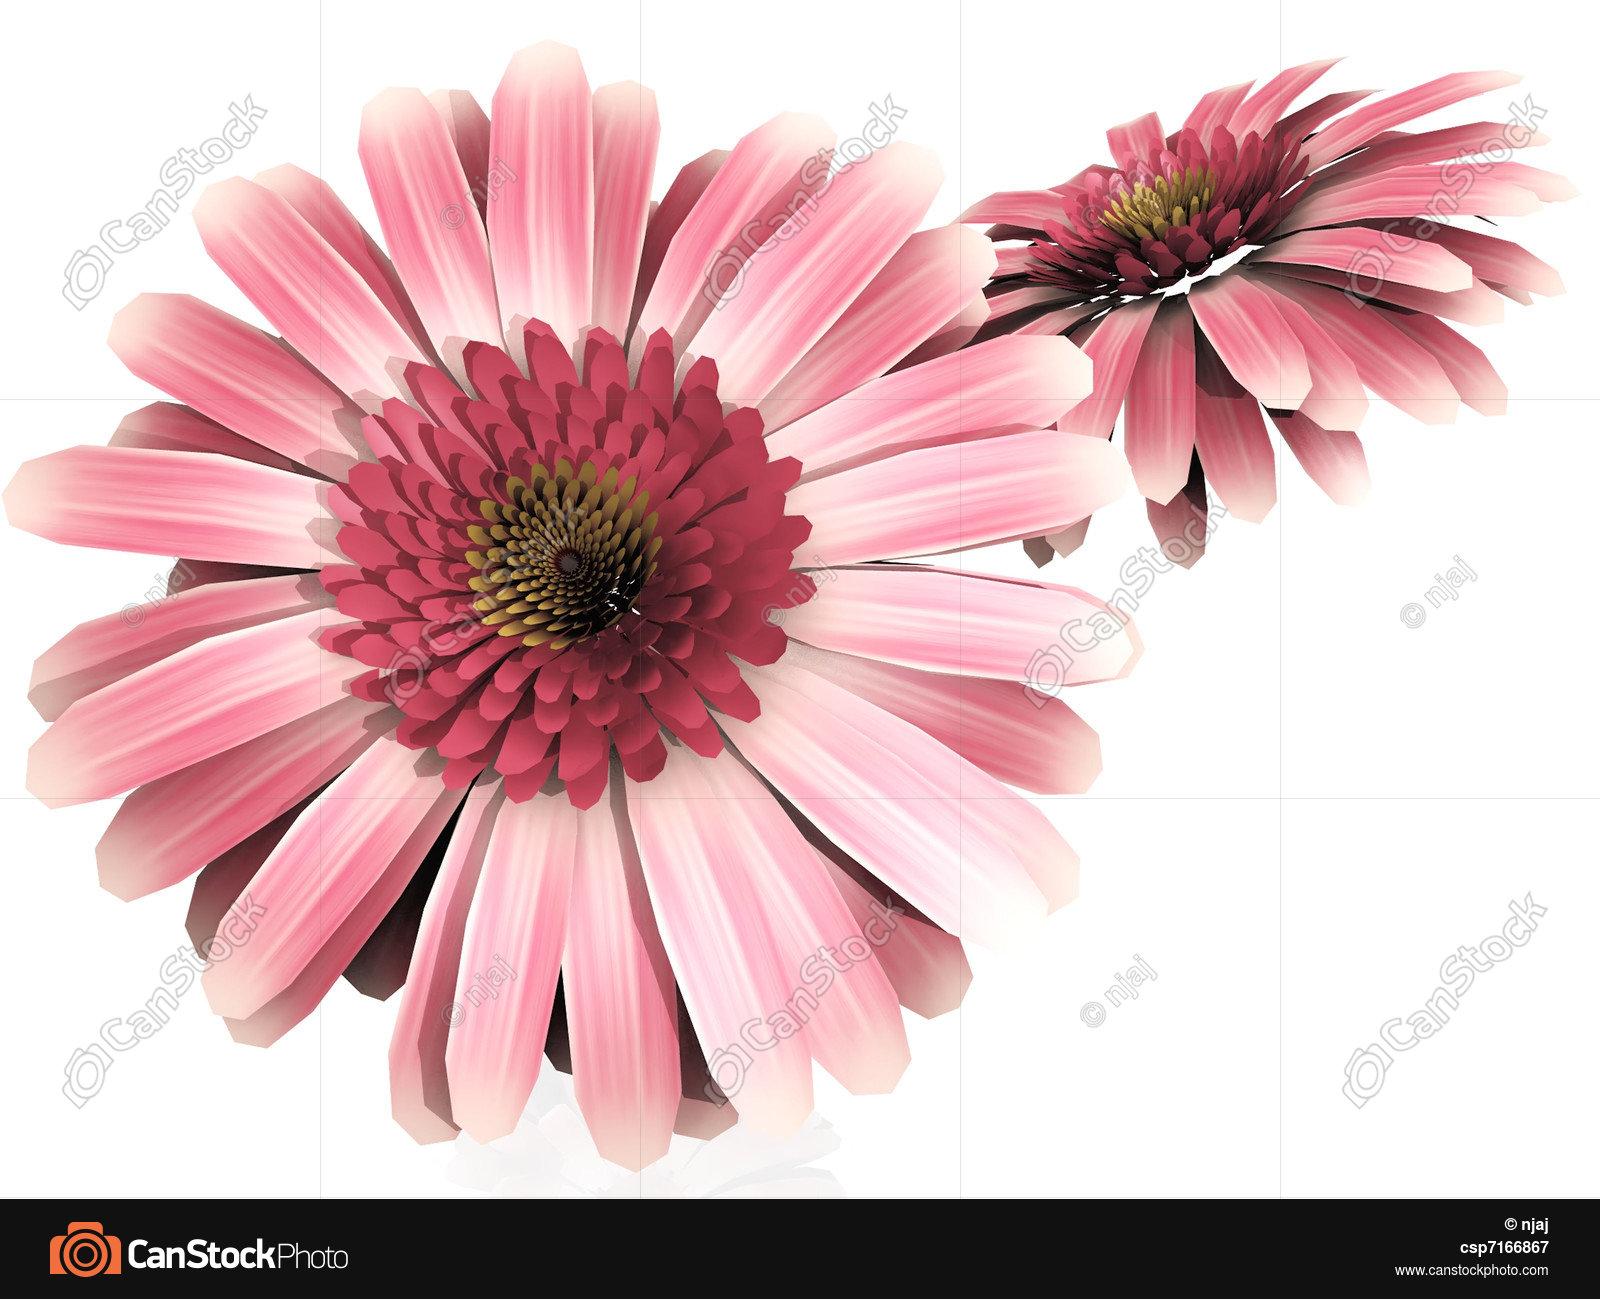 Gerbera daisy stock illustrations - Search EPS Clipart, Drawings ...